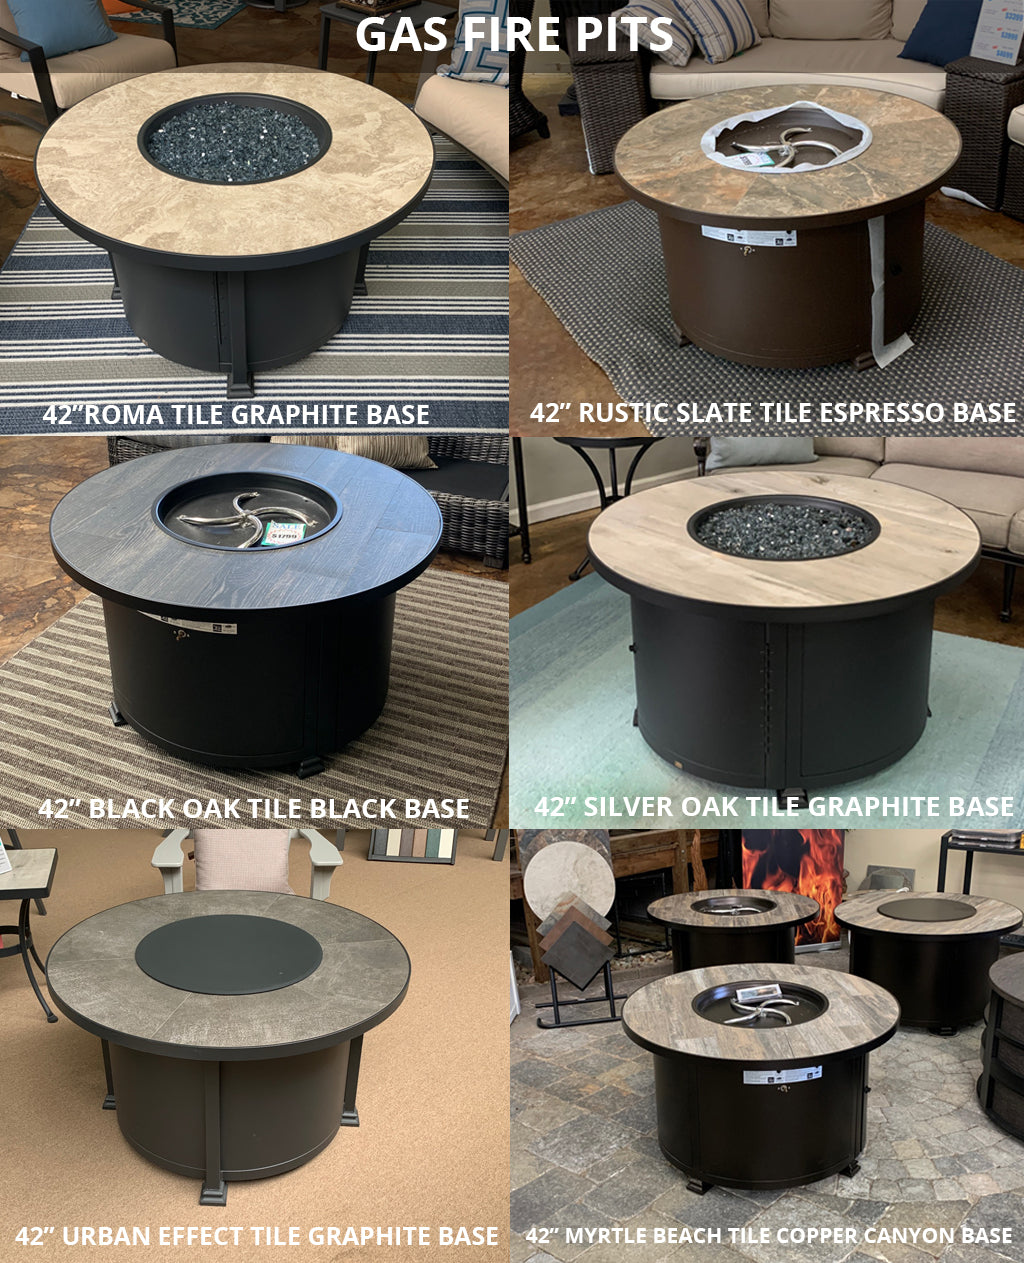 IN STOCK FIRE PITS